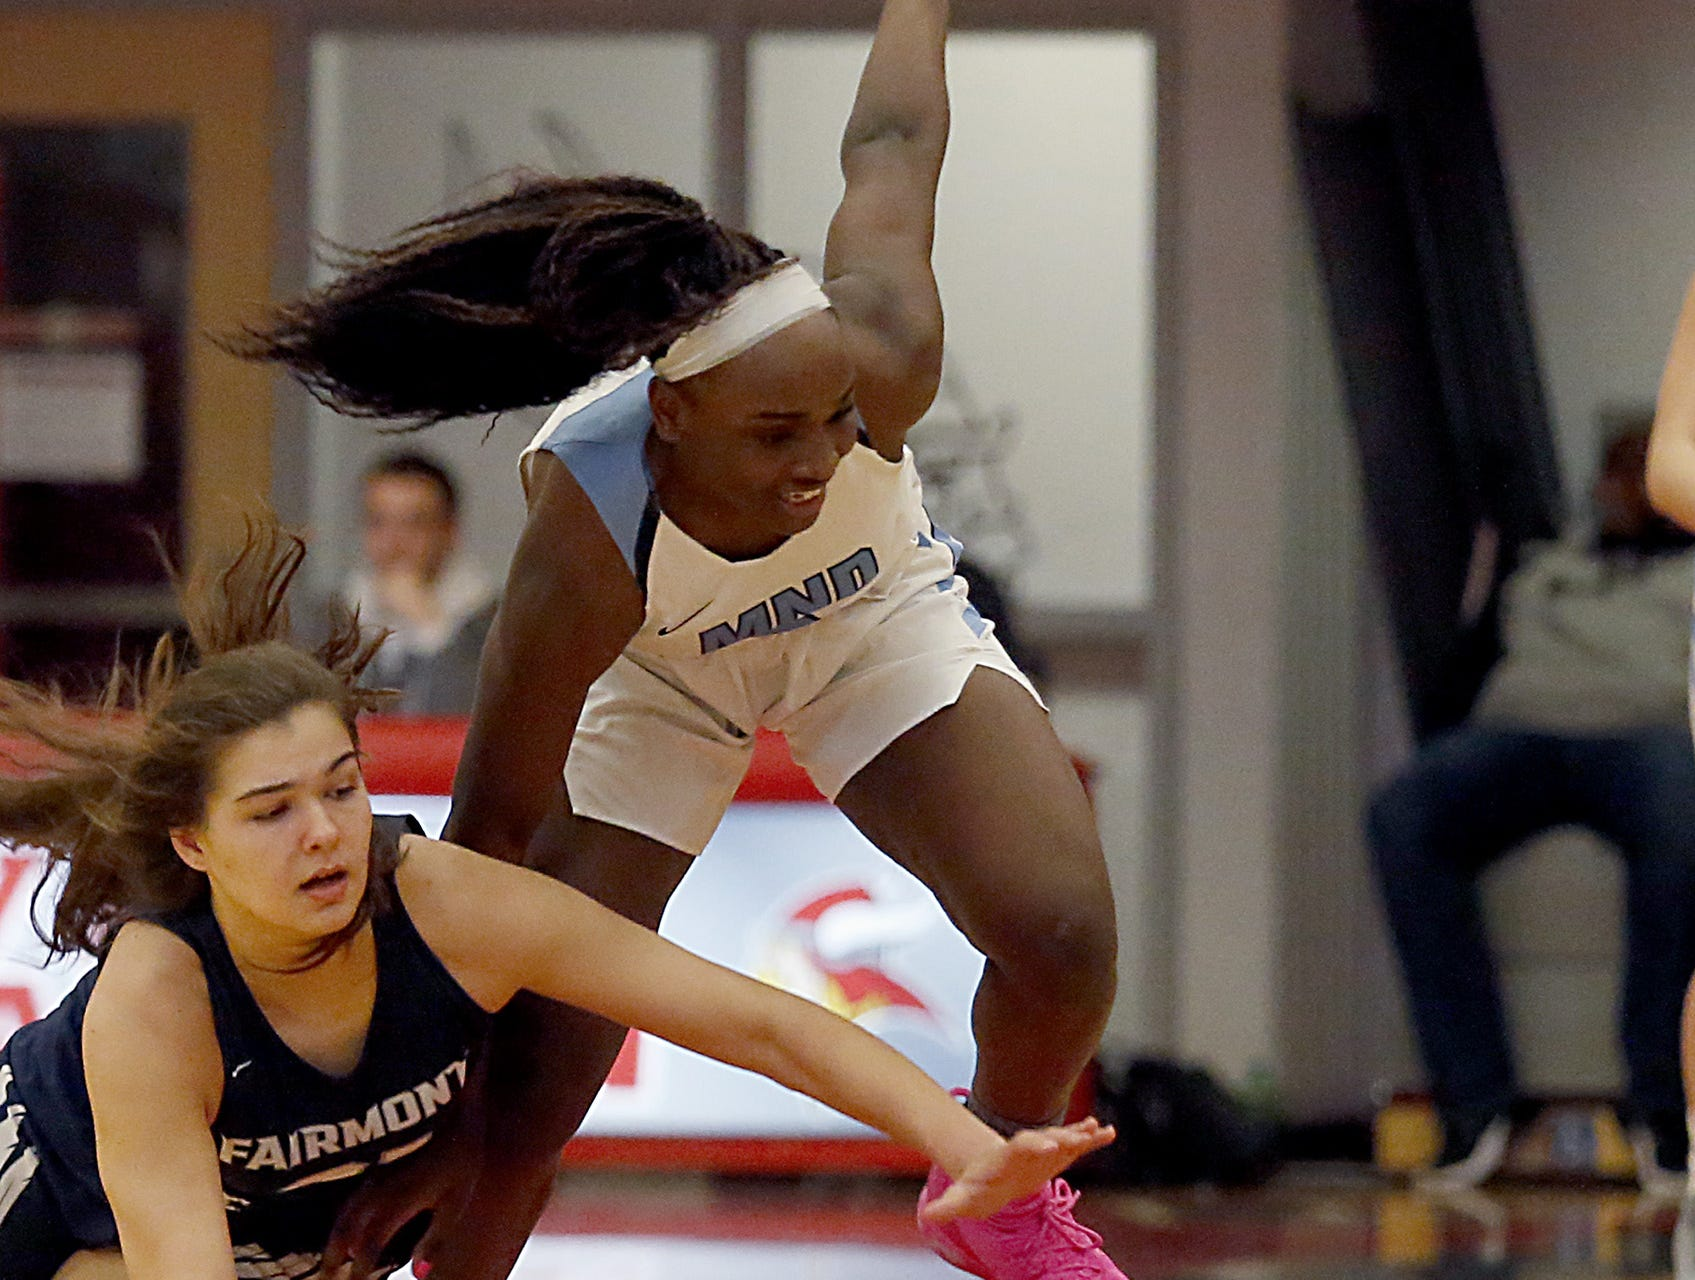 Fairmont guard Makira Copeland and Mt. Notre Dame's K.K. Bransford chase a loose ball during the Southwest District Girls Division I finals at Princeton High School in Cincinnati Saturday, March 2, 2019.